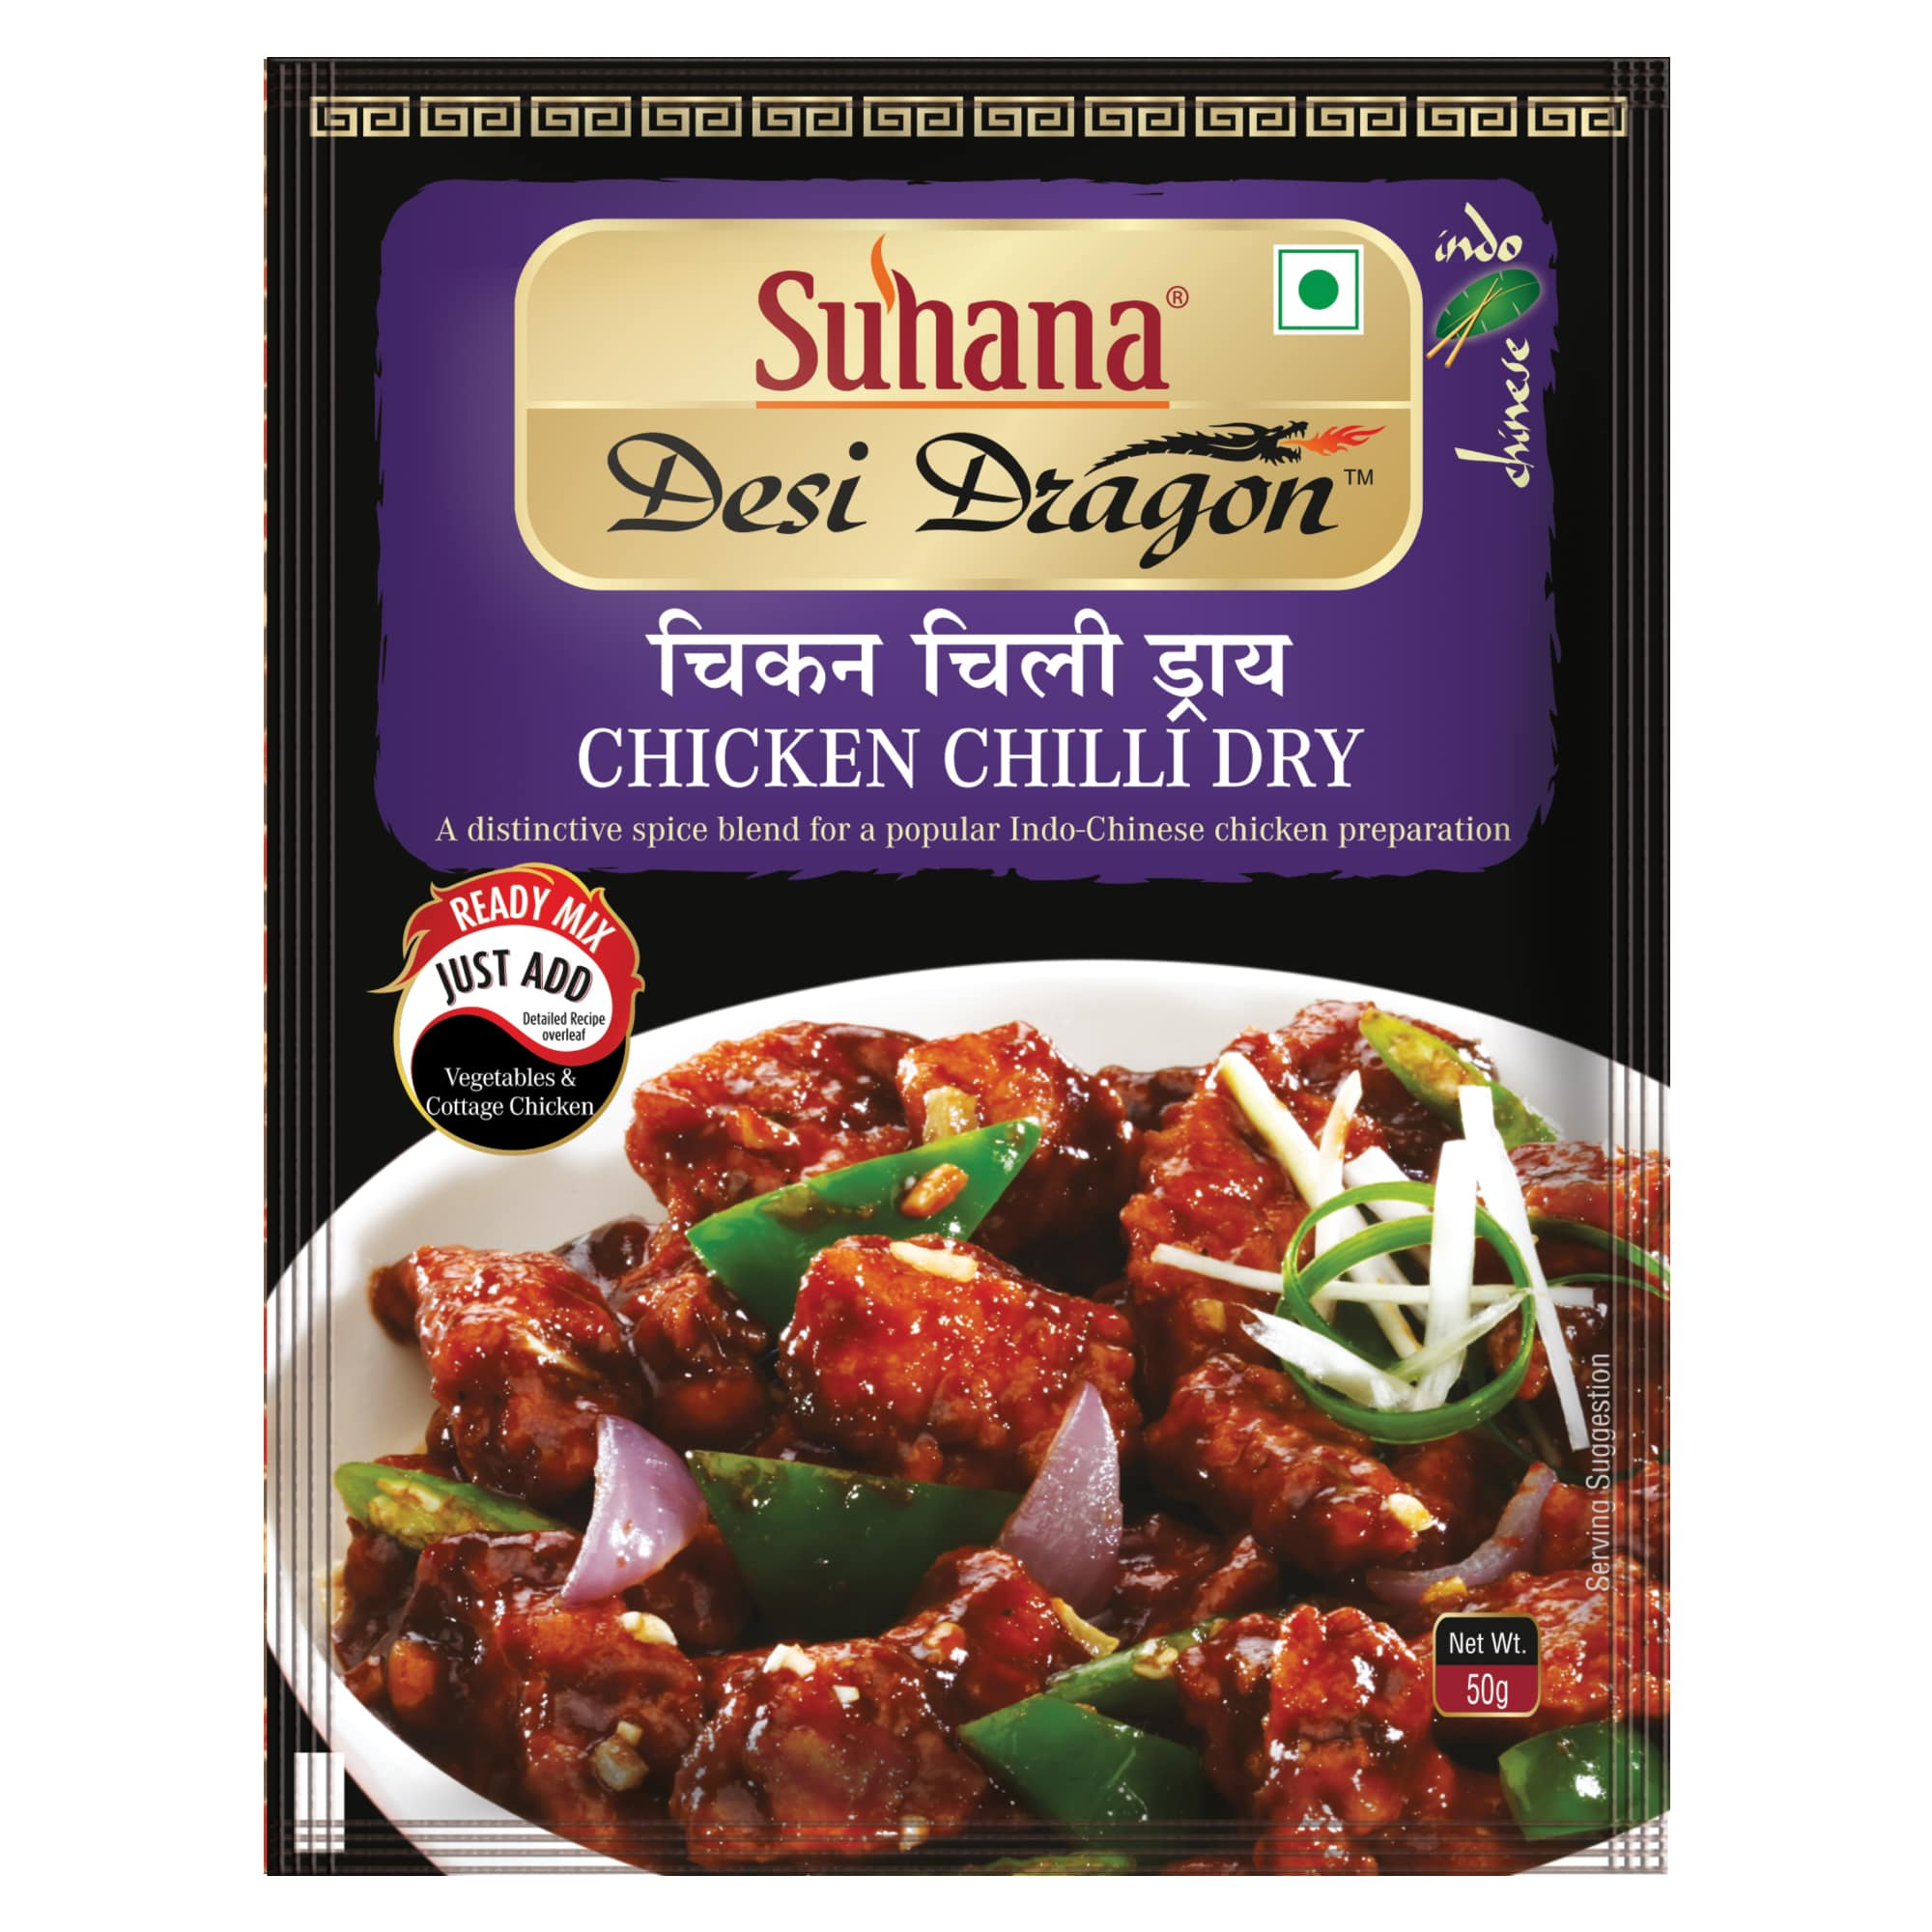 Suhana Chicken Chilli (Dry) Mix 50 g Pouch